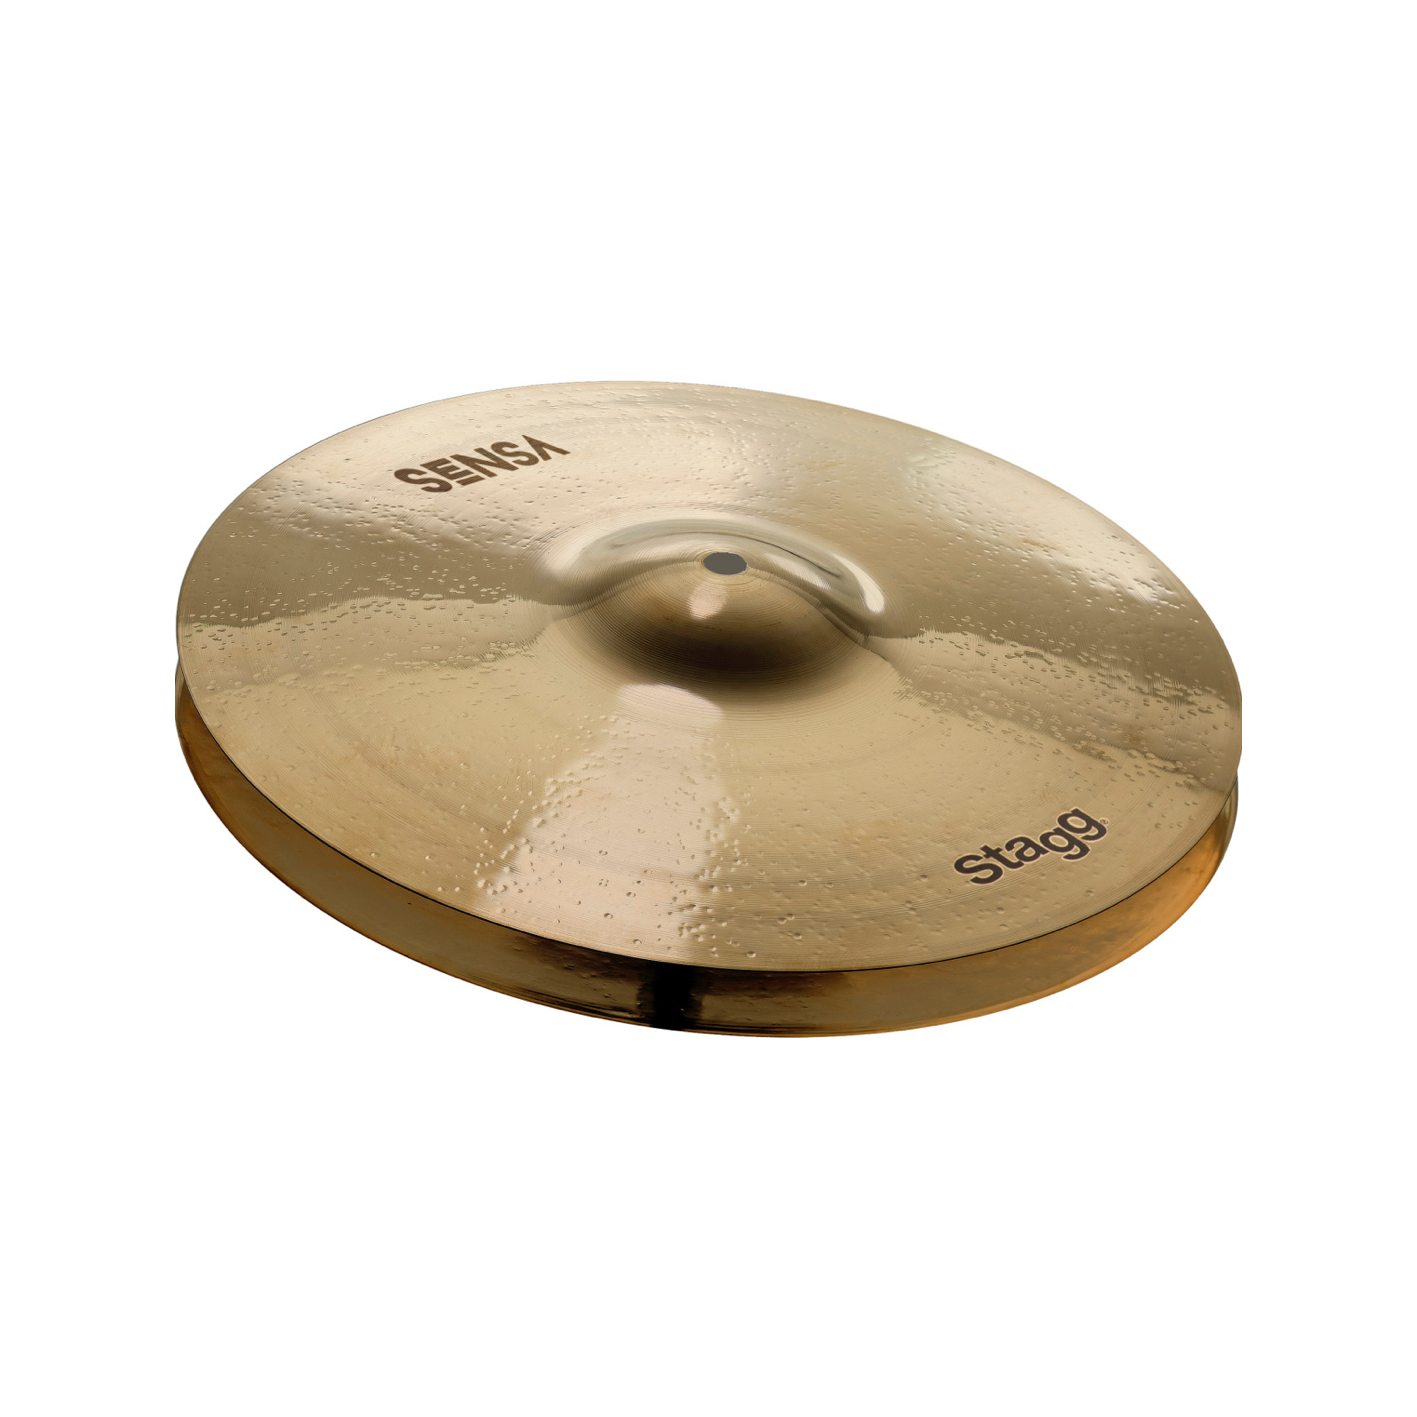 "Stagg Sensa 14"" medium hi-hat cymbals"